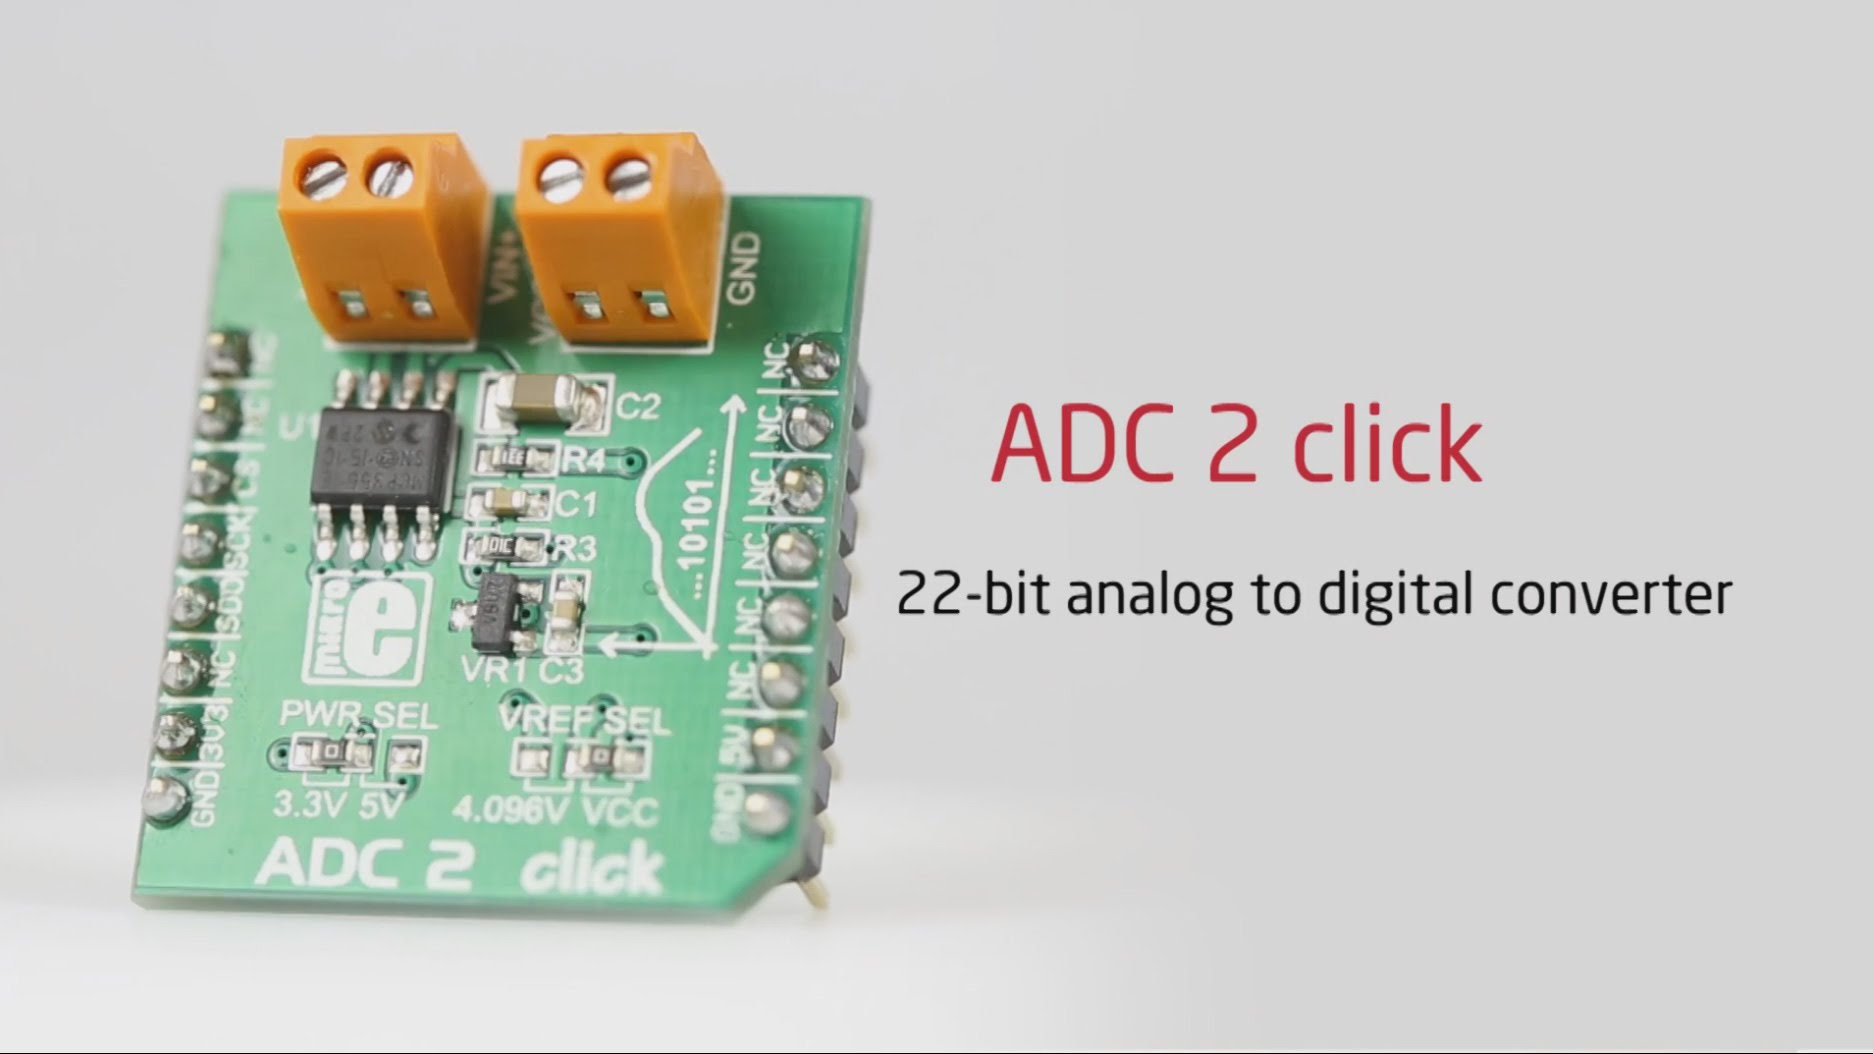 ADC 2 click released